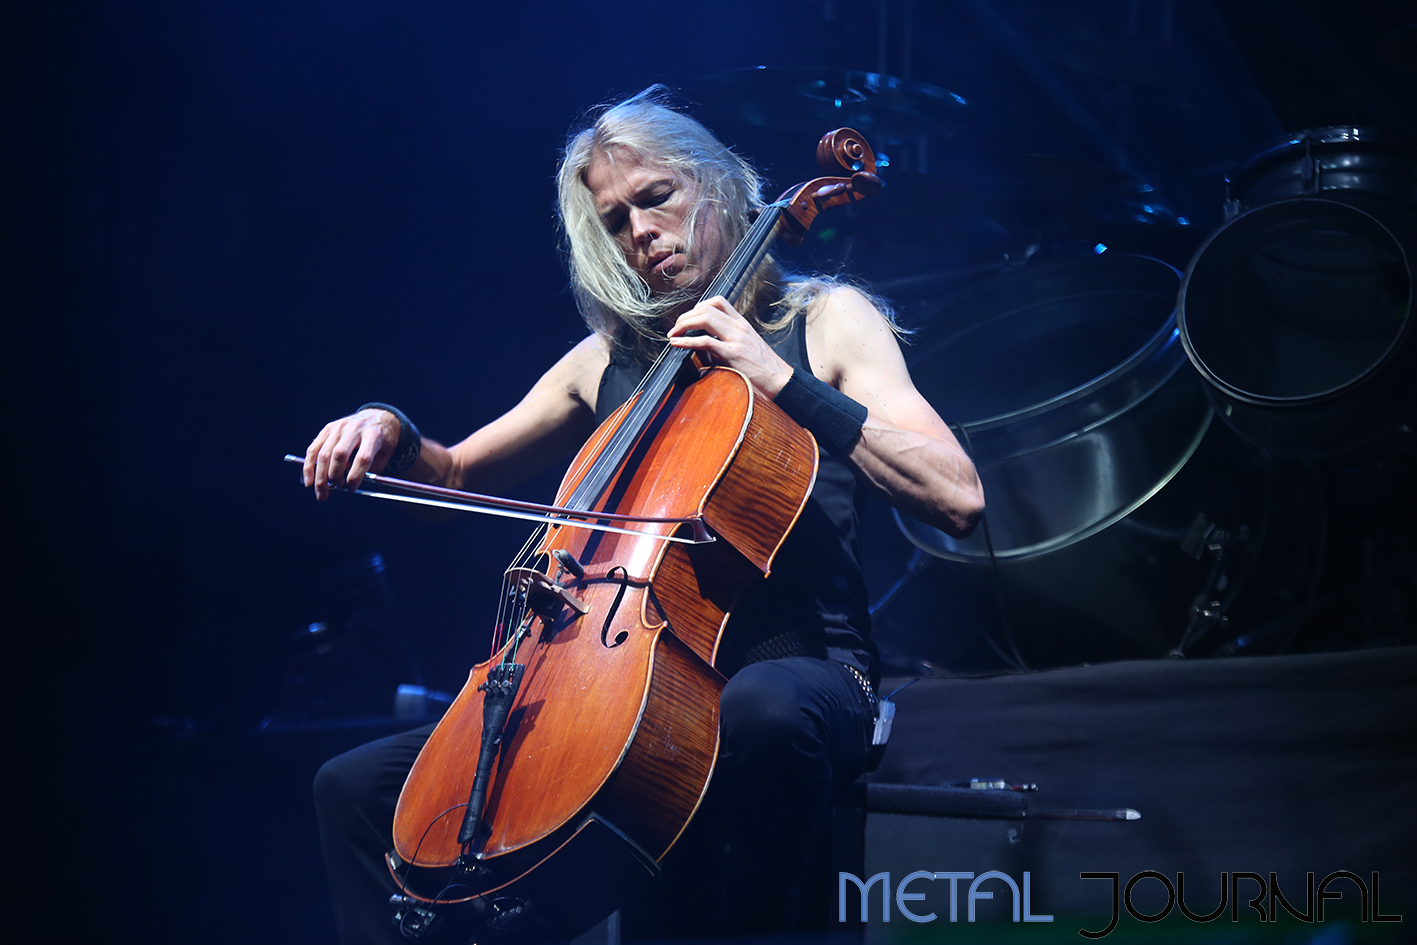 apocalyptica - leyendas del rock 2019 metal journal pic 5